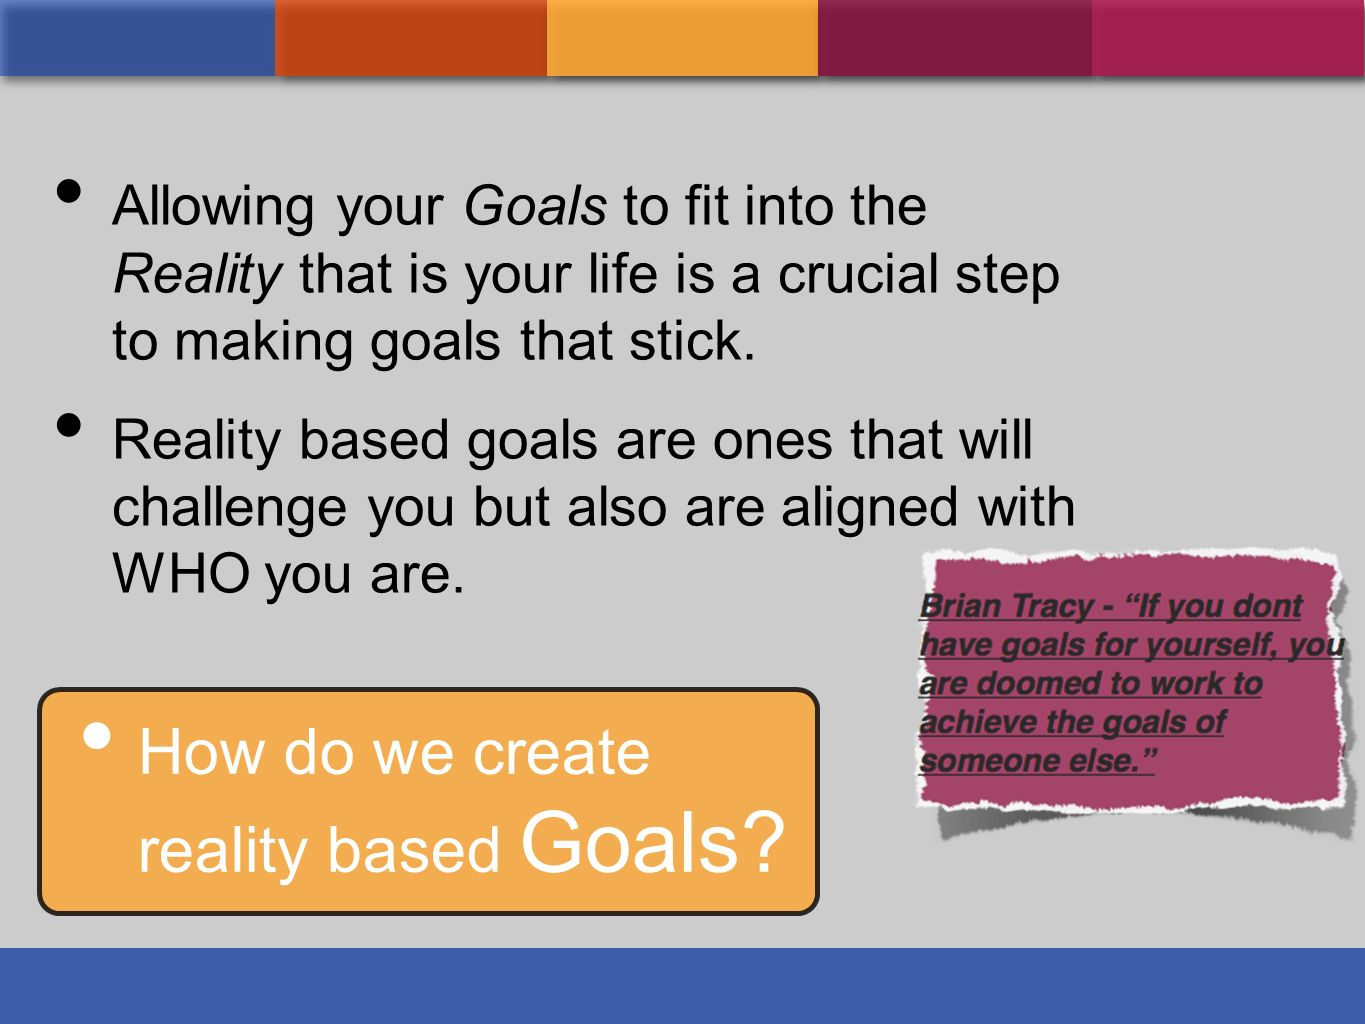 How do we create reality based Goals